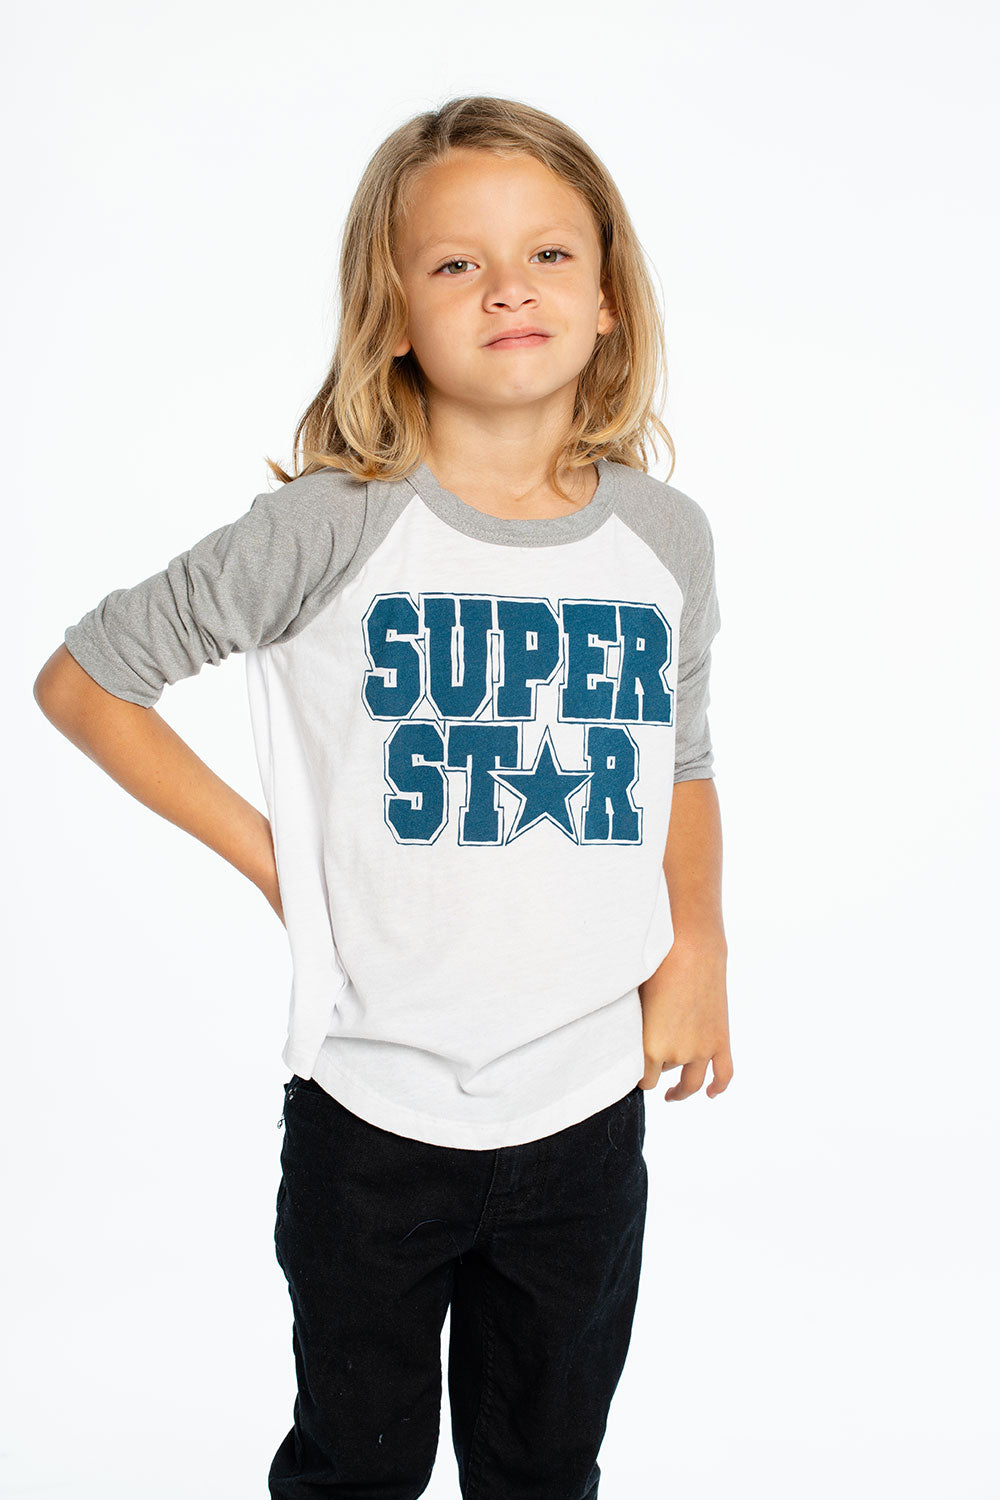 Super Star, BOYS, chaserbrand.com,chaser clothing,chaser apparel,chaser los angeles